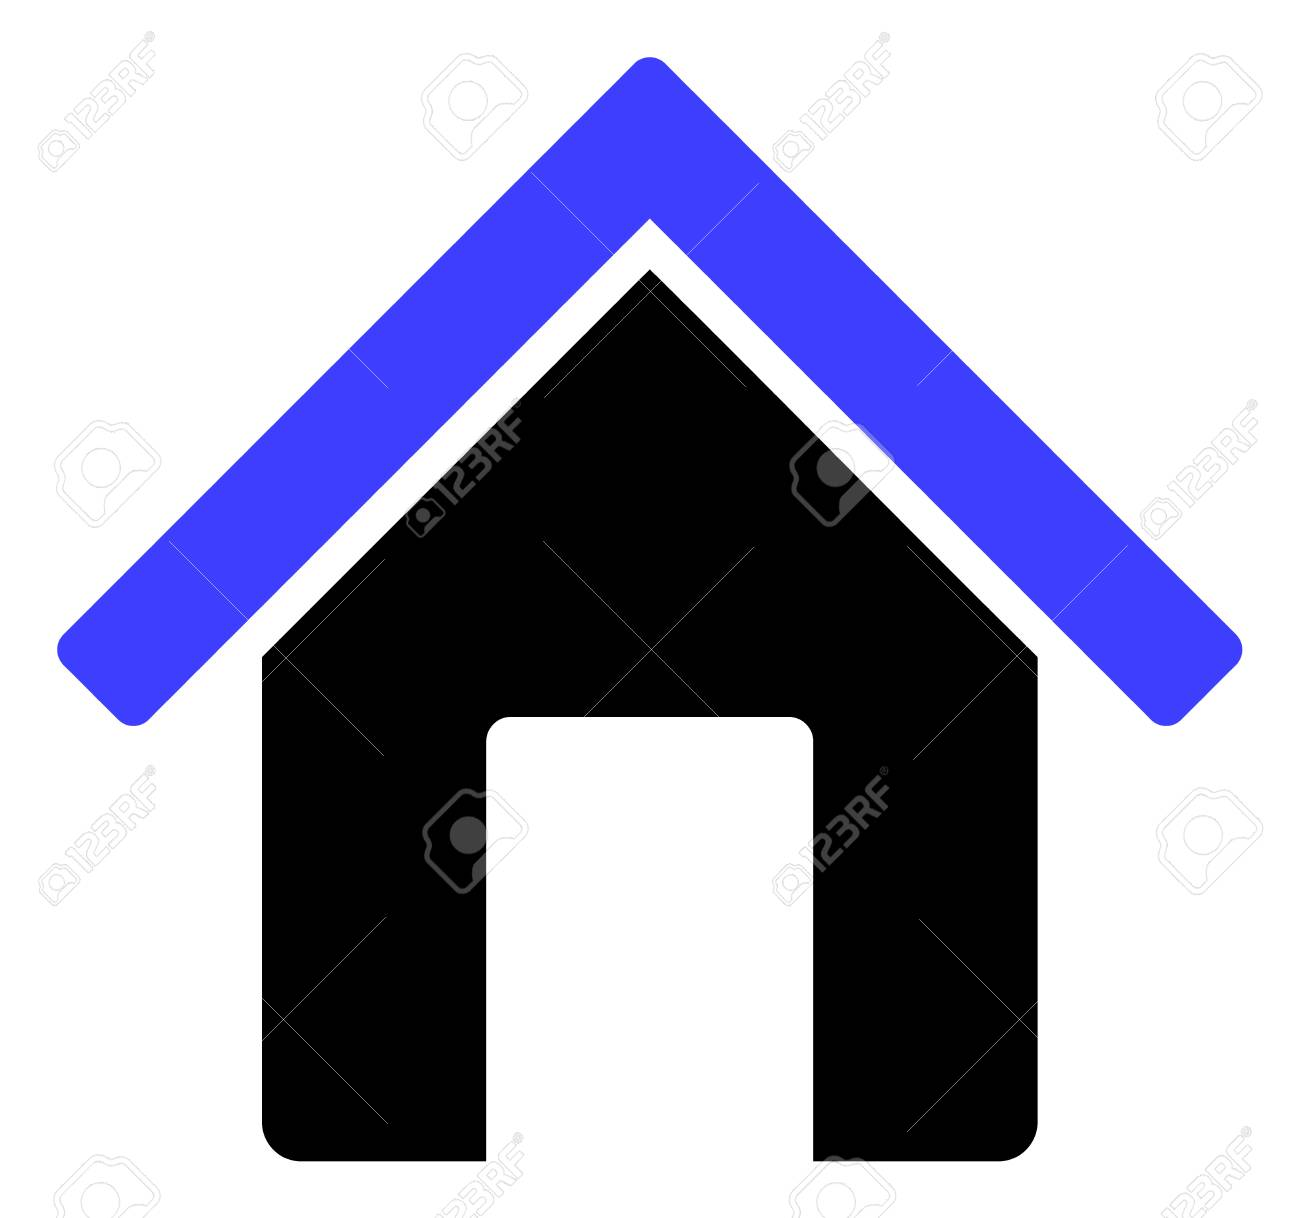 Home icon on a white background. Isolated home symbol with flat style. - 128561711